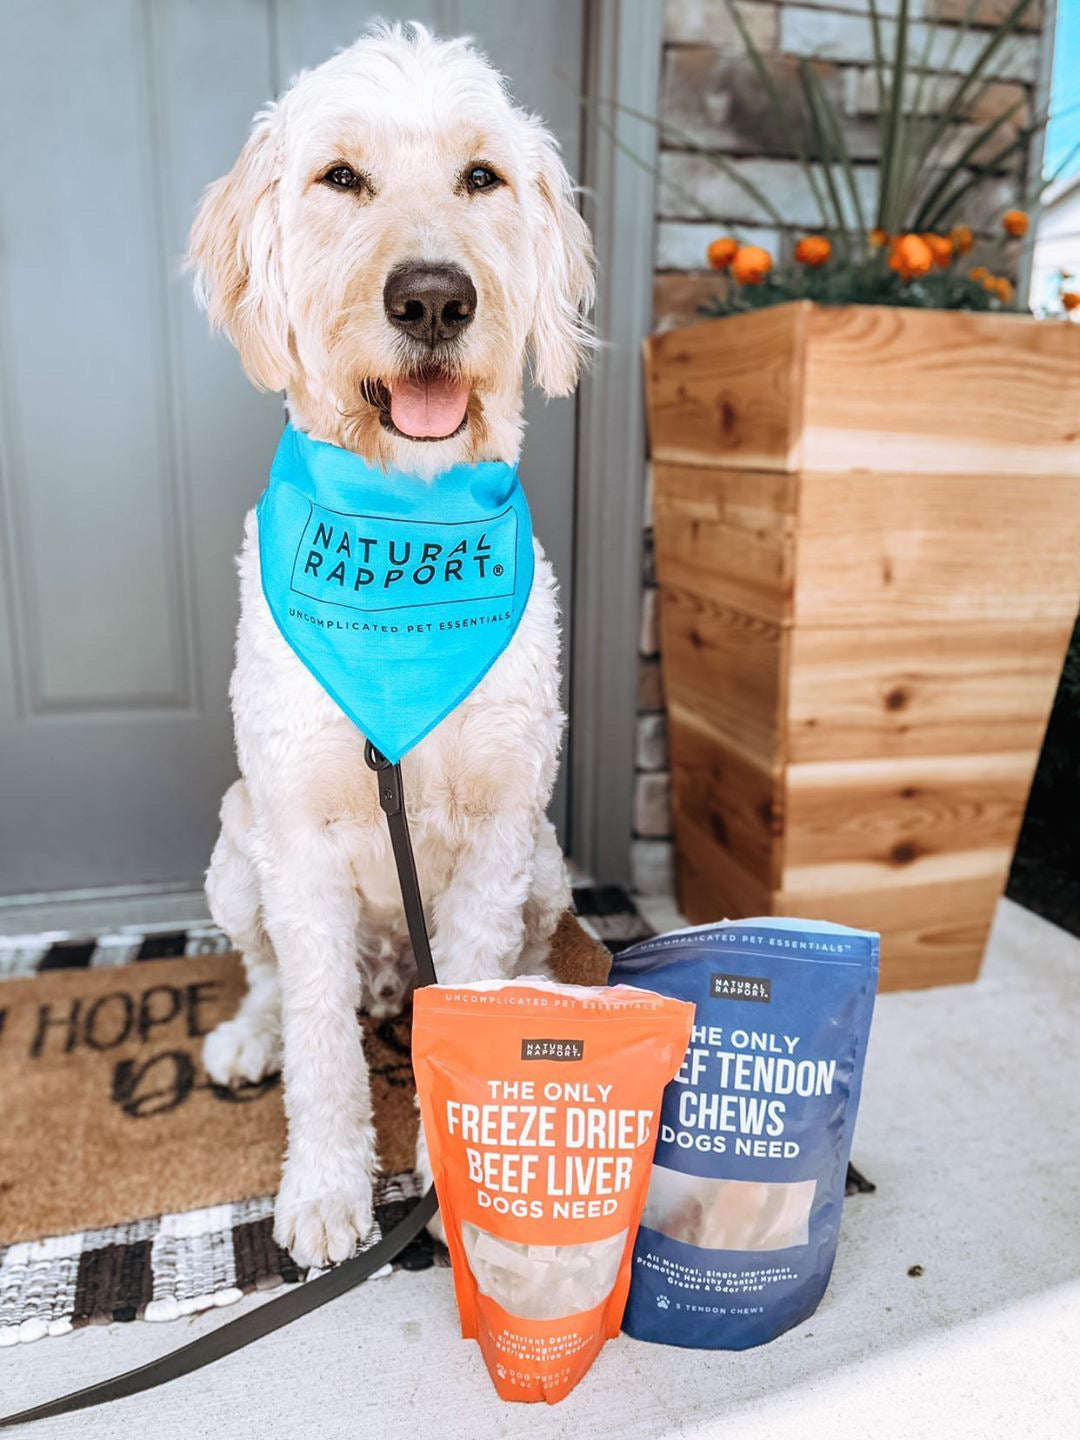 Doodle with Natural Rapport dog products - Photo Credit @thatdoodlemurph